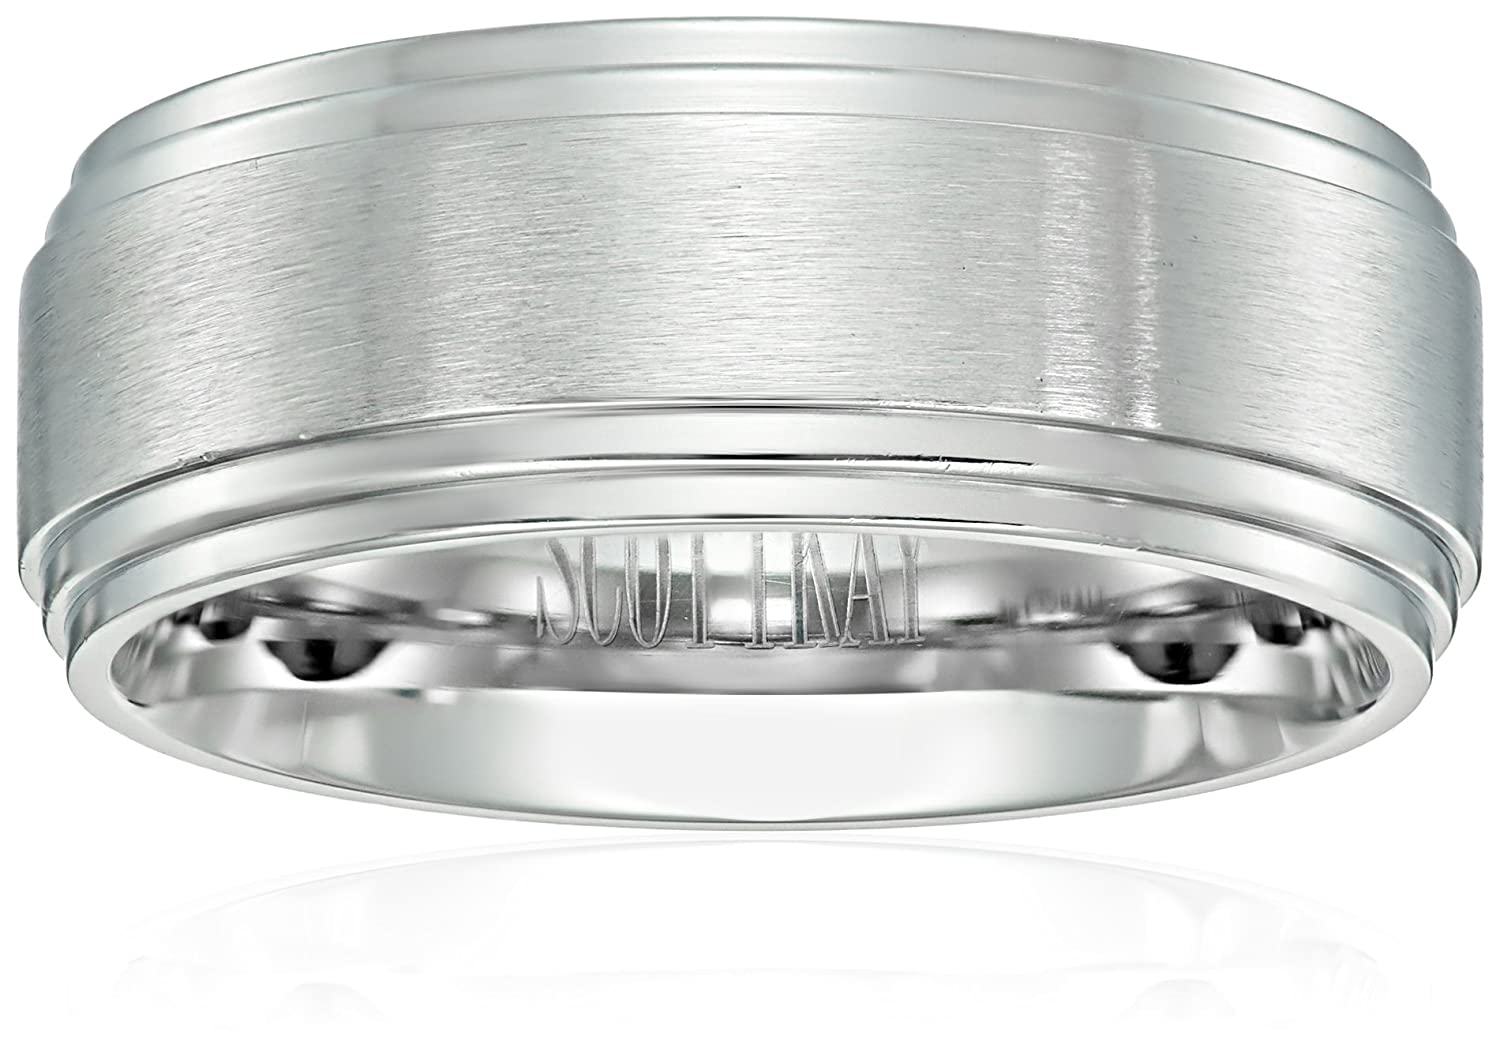 Men's Scott Kay Cobalt Prime Band With Satin Center And Double Step Edge Wedding Bands Size 13 Amazon: Scott Kay Prime Cobalt Wedding Band At Websimilar.org